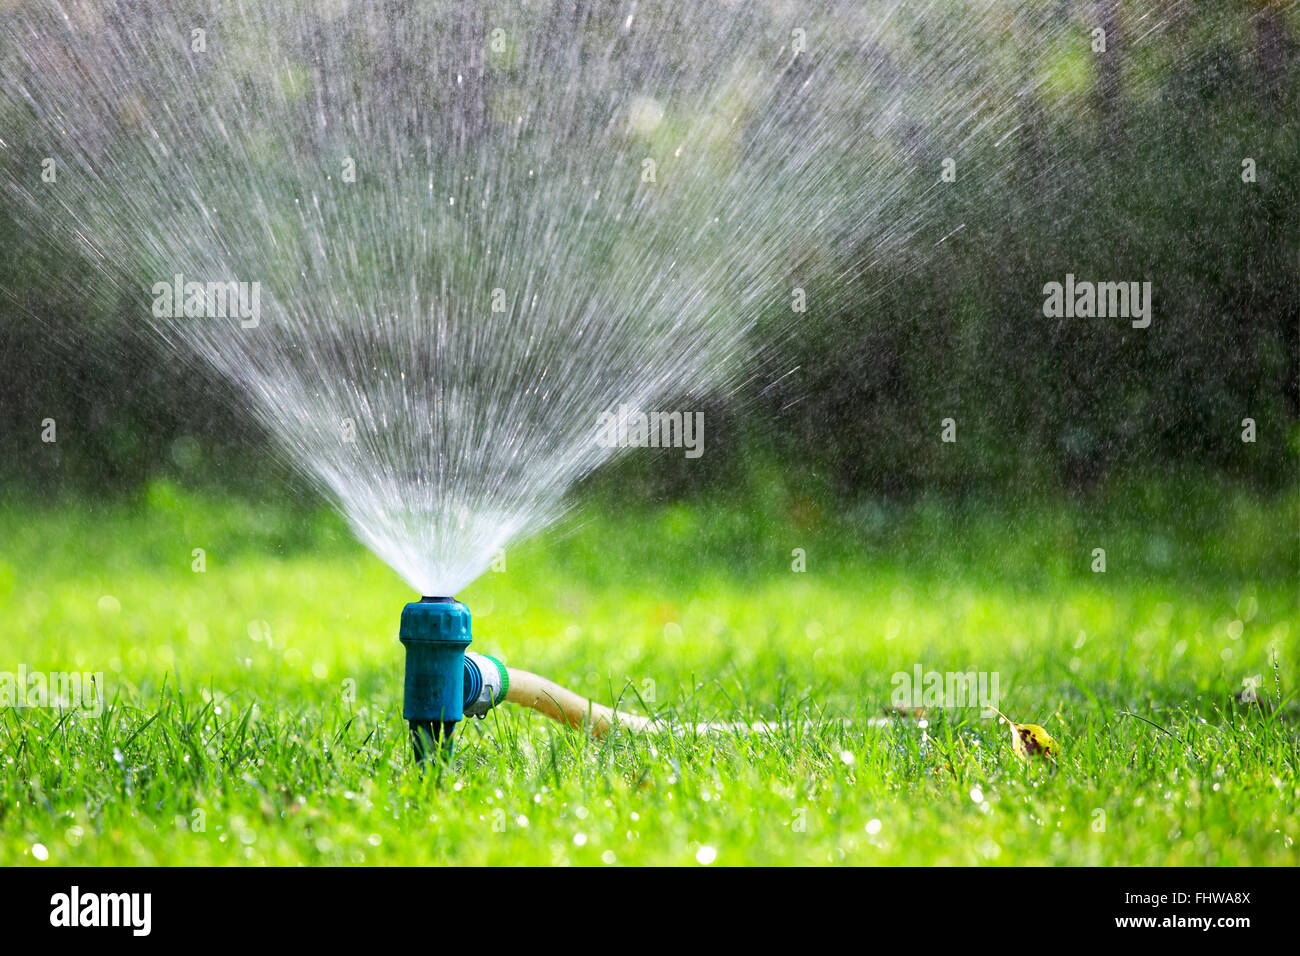 Lawn sprinkler spraying water over grass in garden on a hot summer day - Stock Image